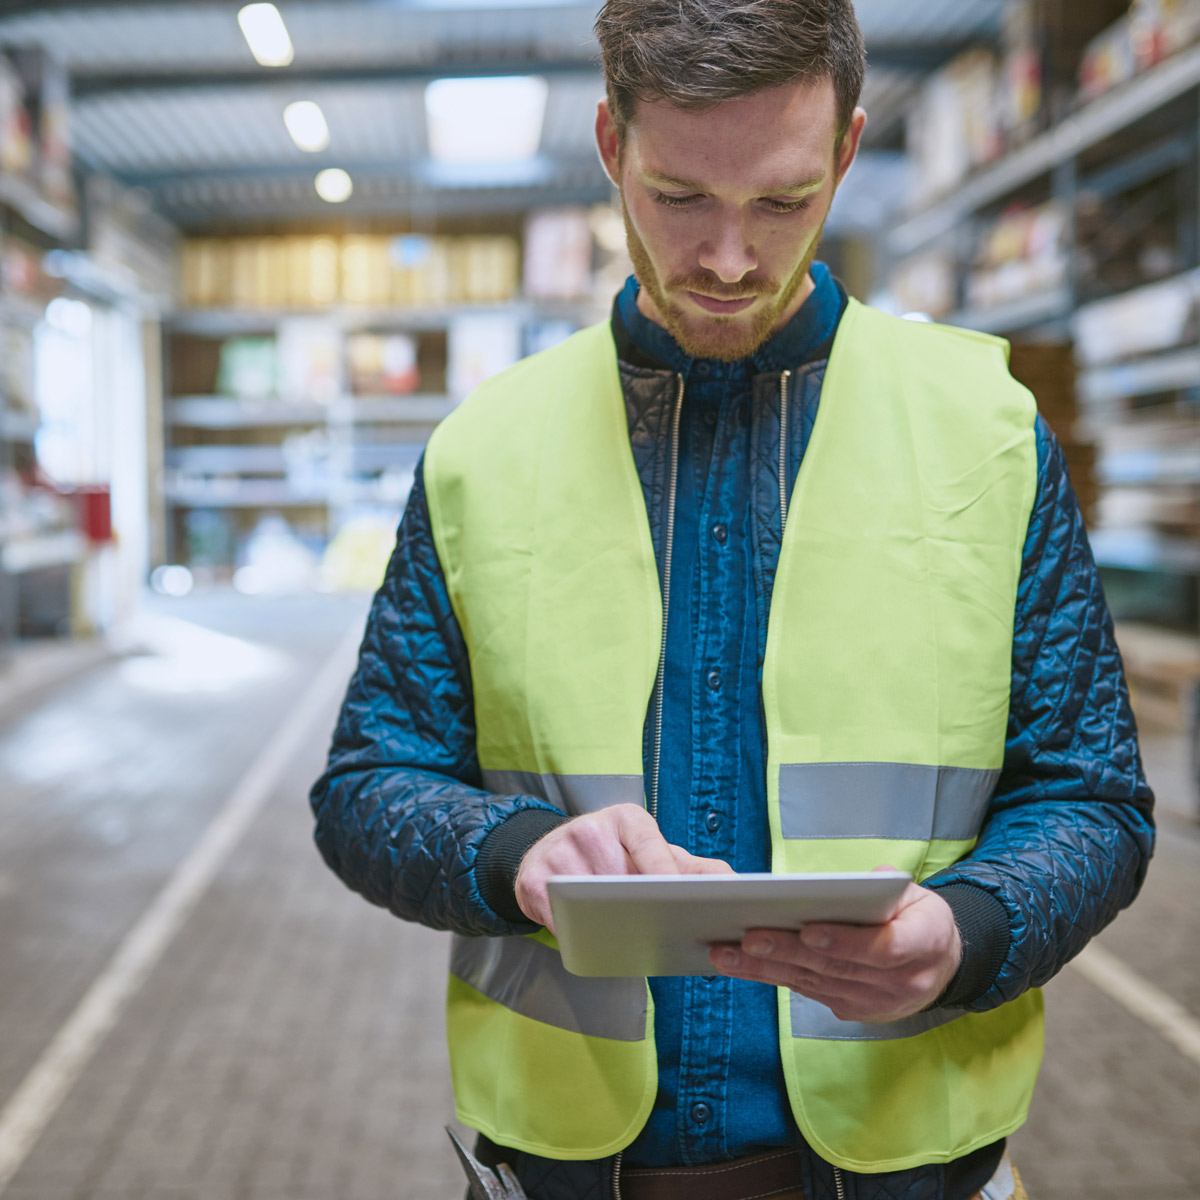 Man in high visibility vest looking at tablet screen in a warehouse